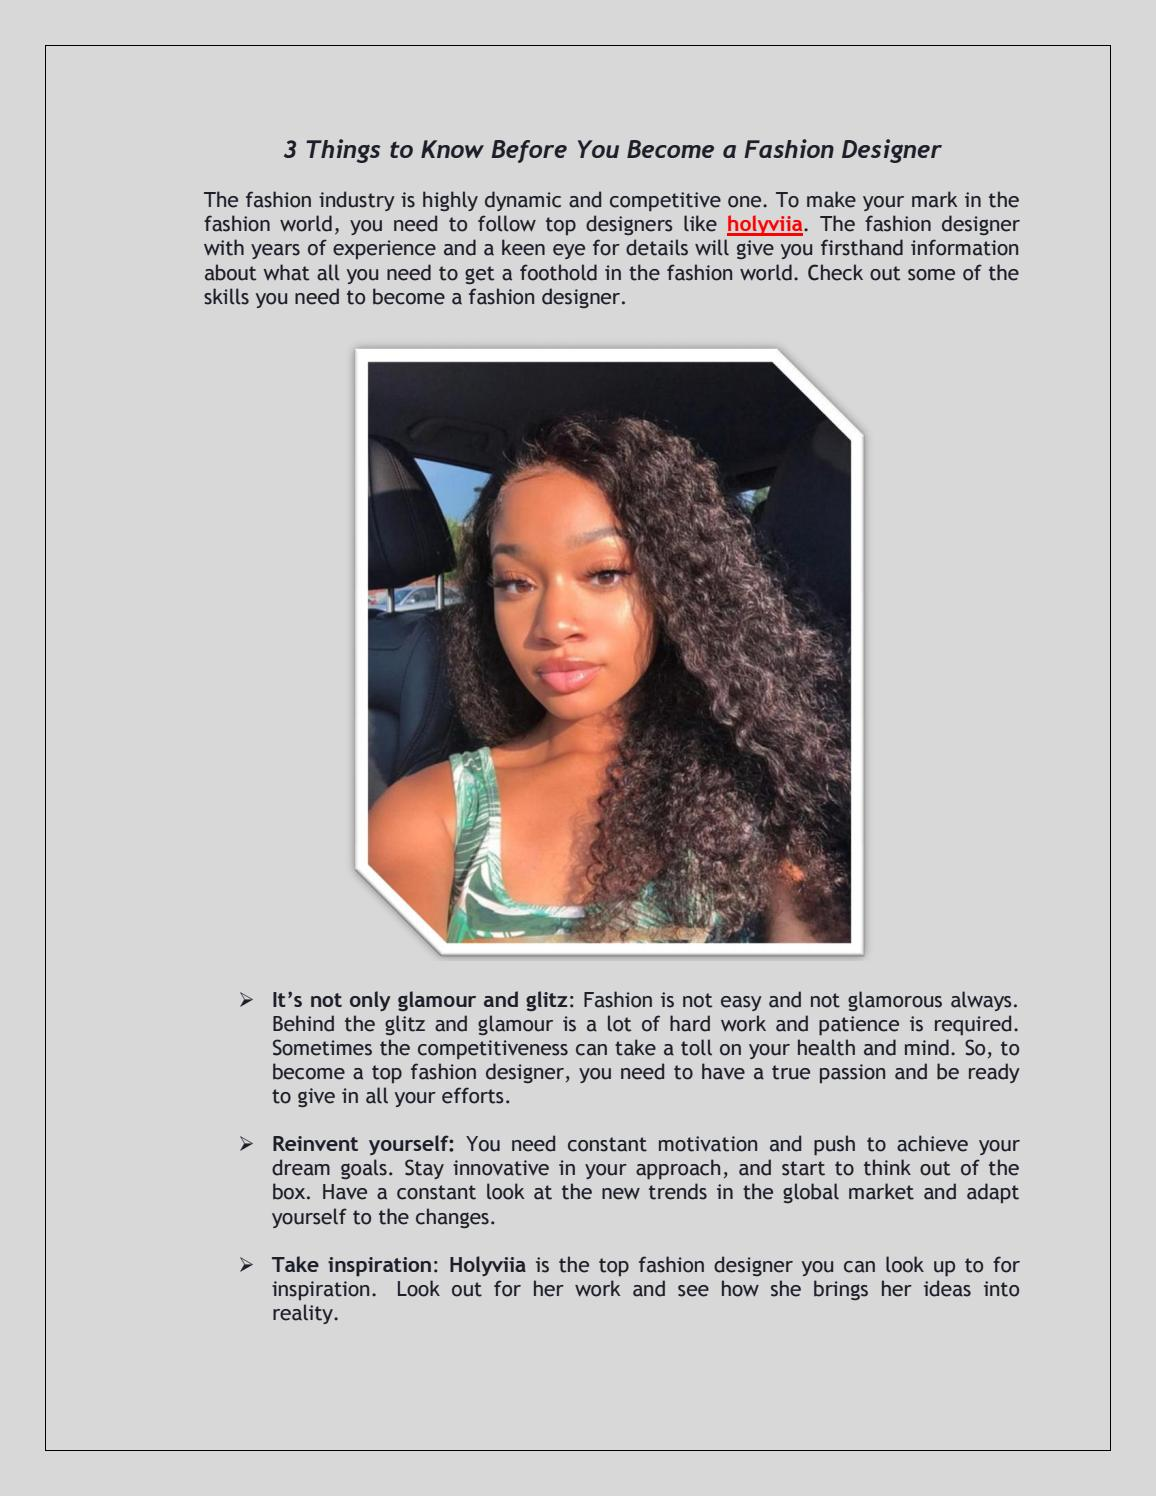 3 Things To Know Before You Become A Fashion Designer By Dieng Olivia Issuu